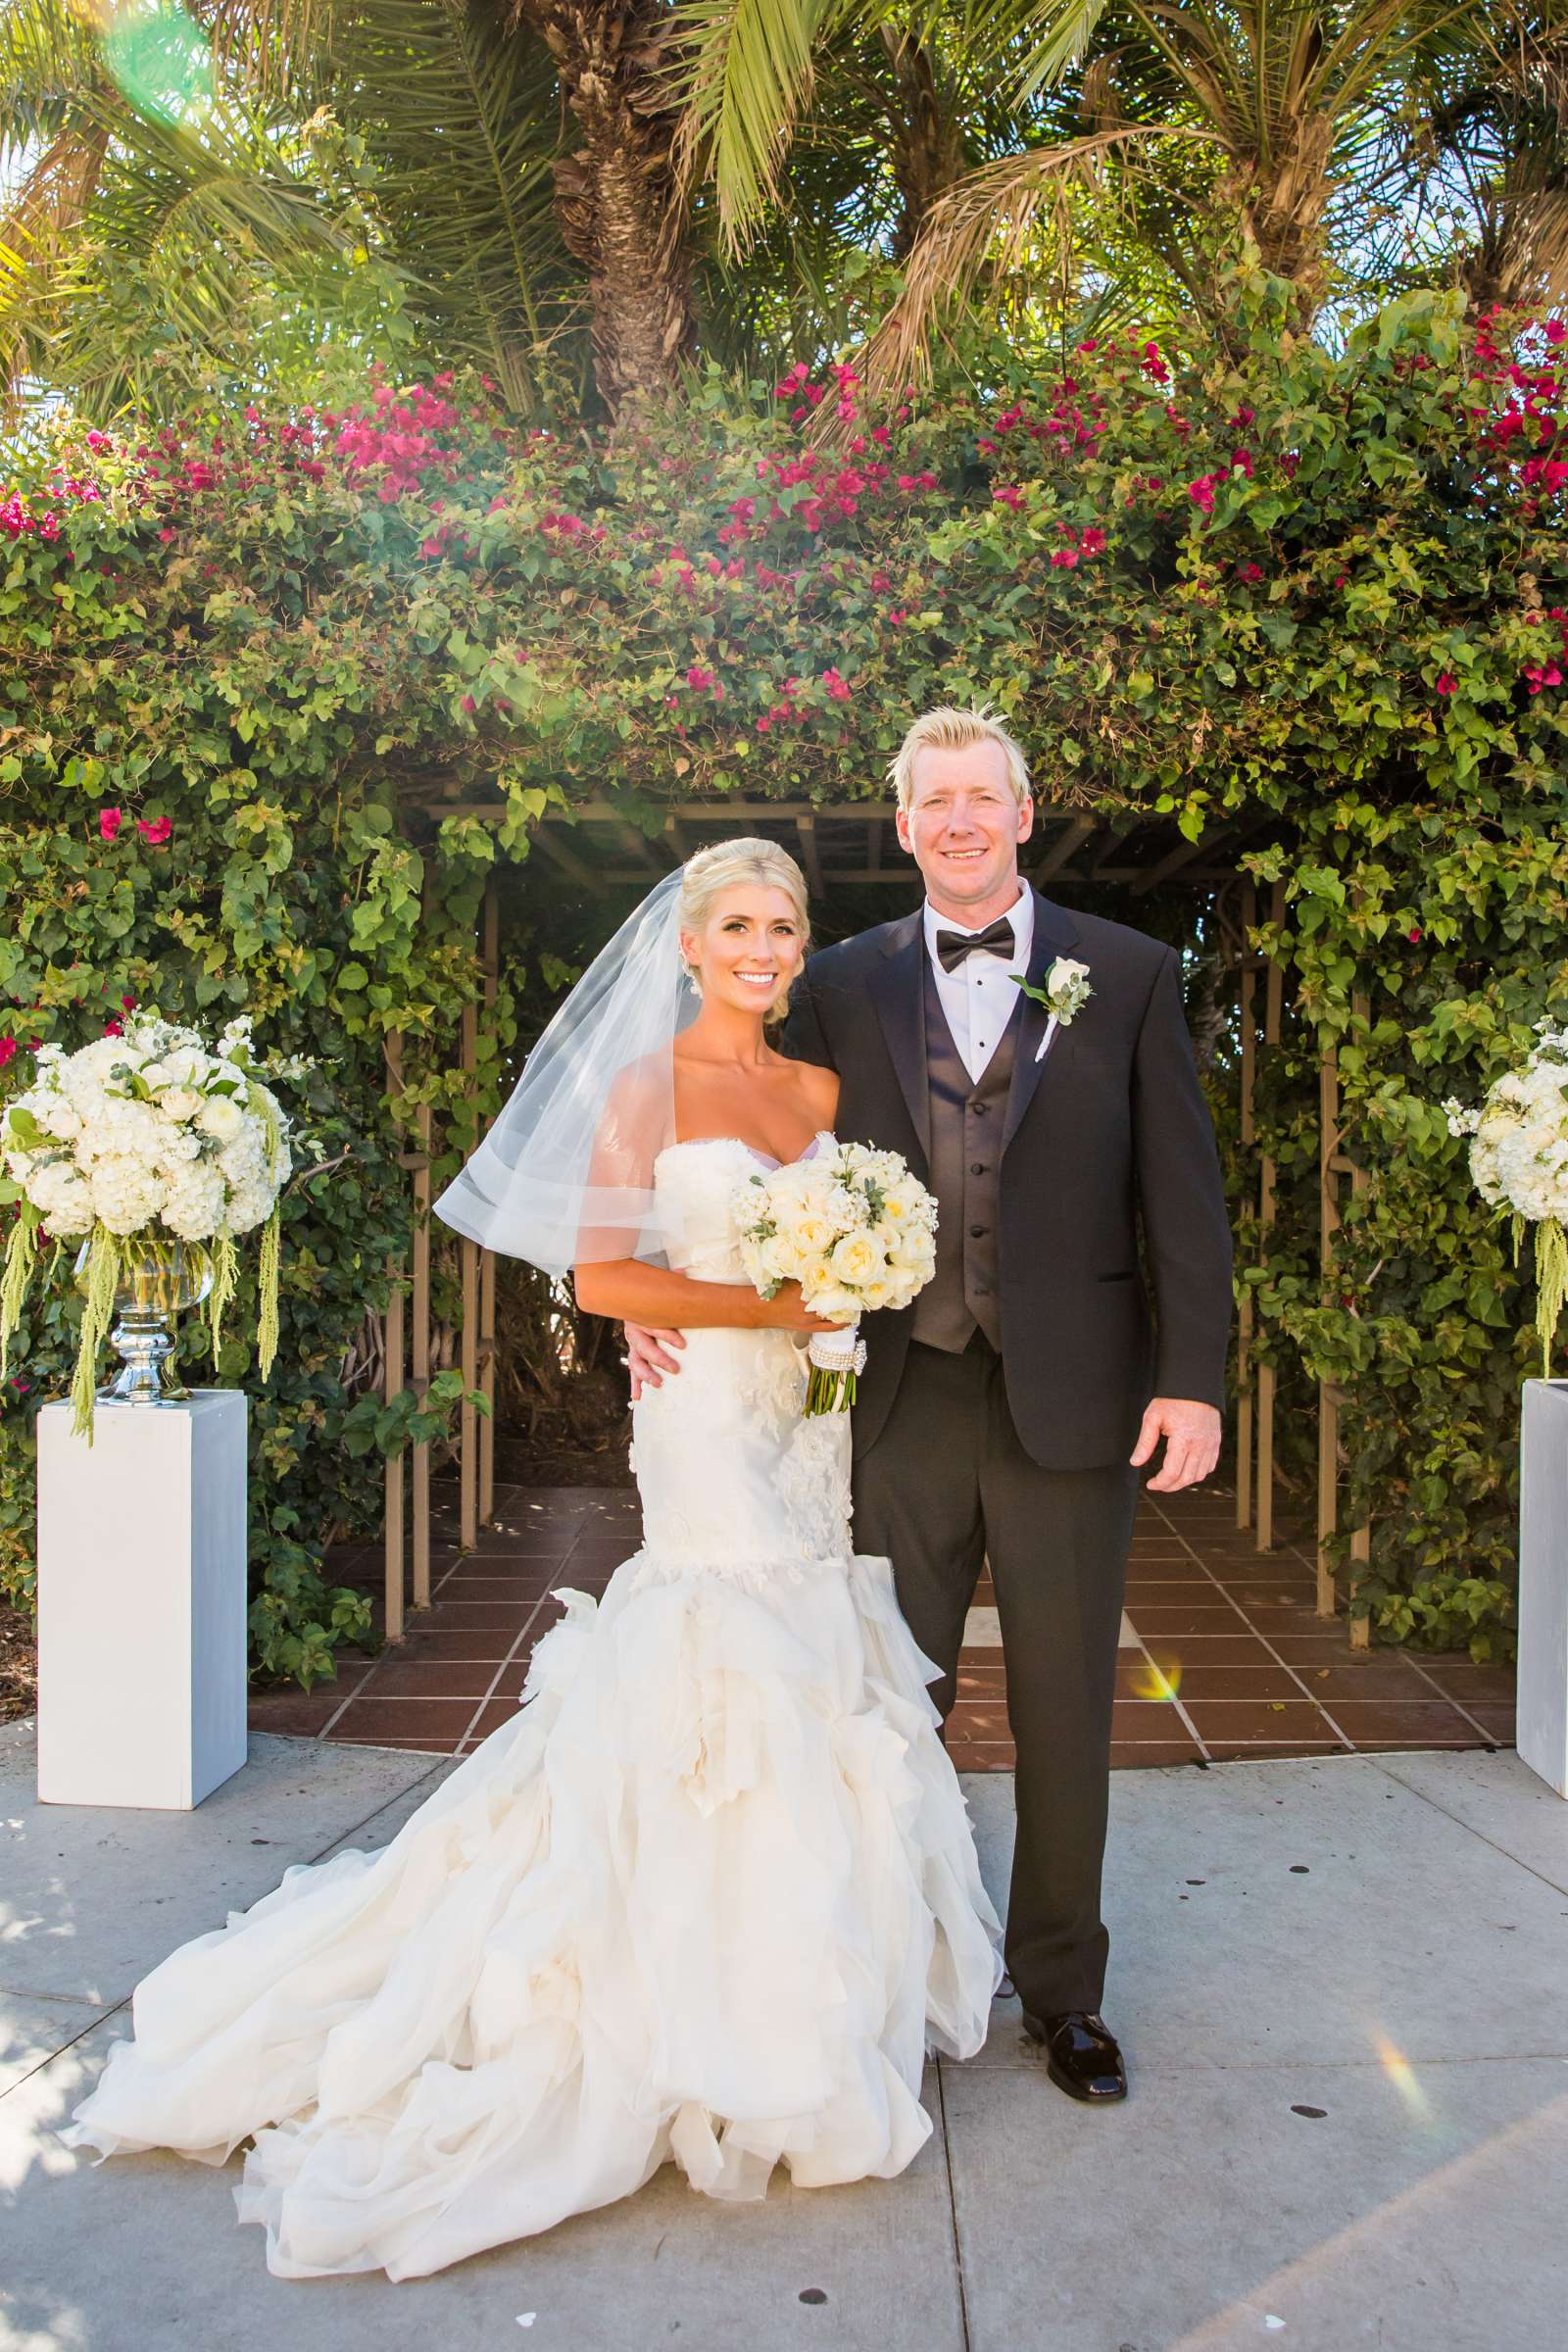 Formal Portrait at Waterfront Park Wedding coordinated by Socal Soiree, Jennell and Terry Wedding Photo #6 by True Photography